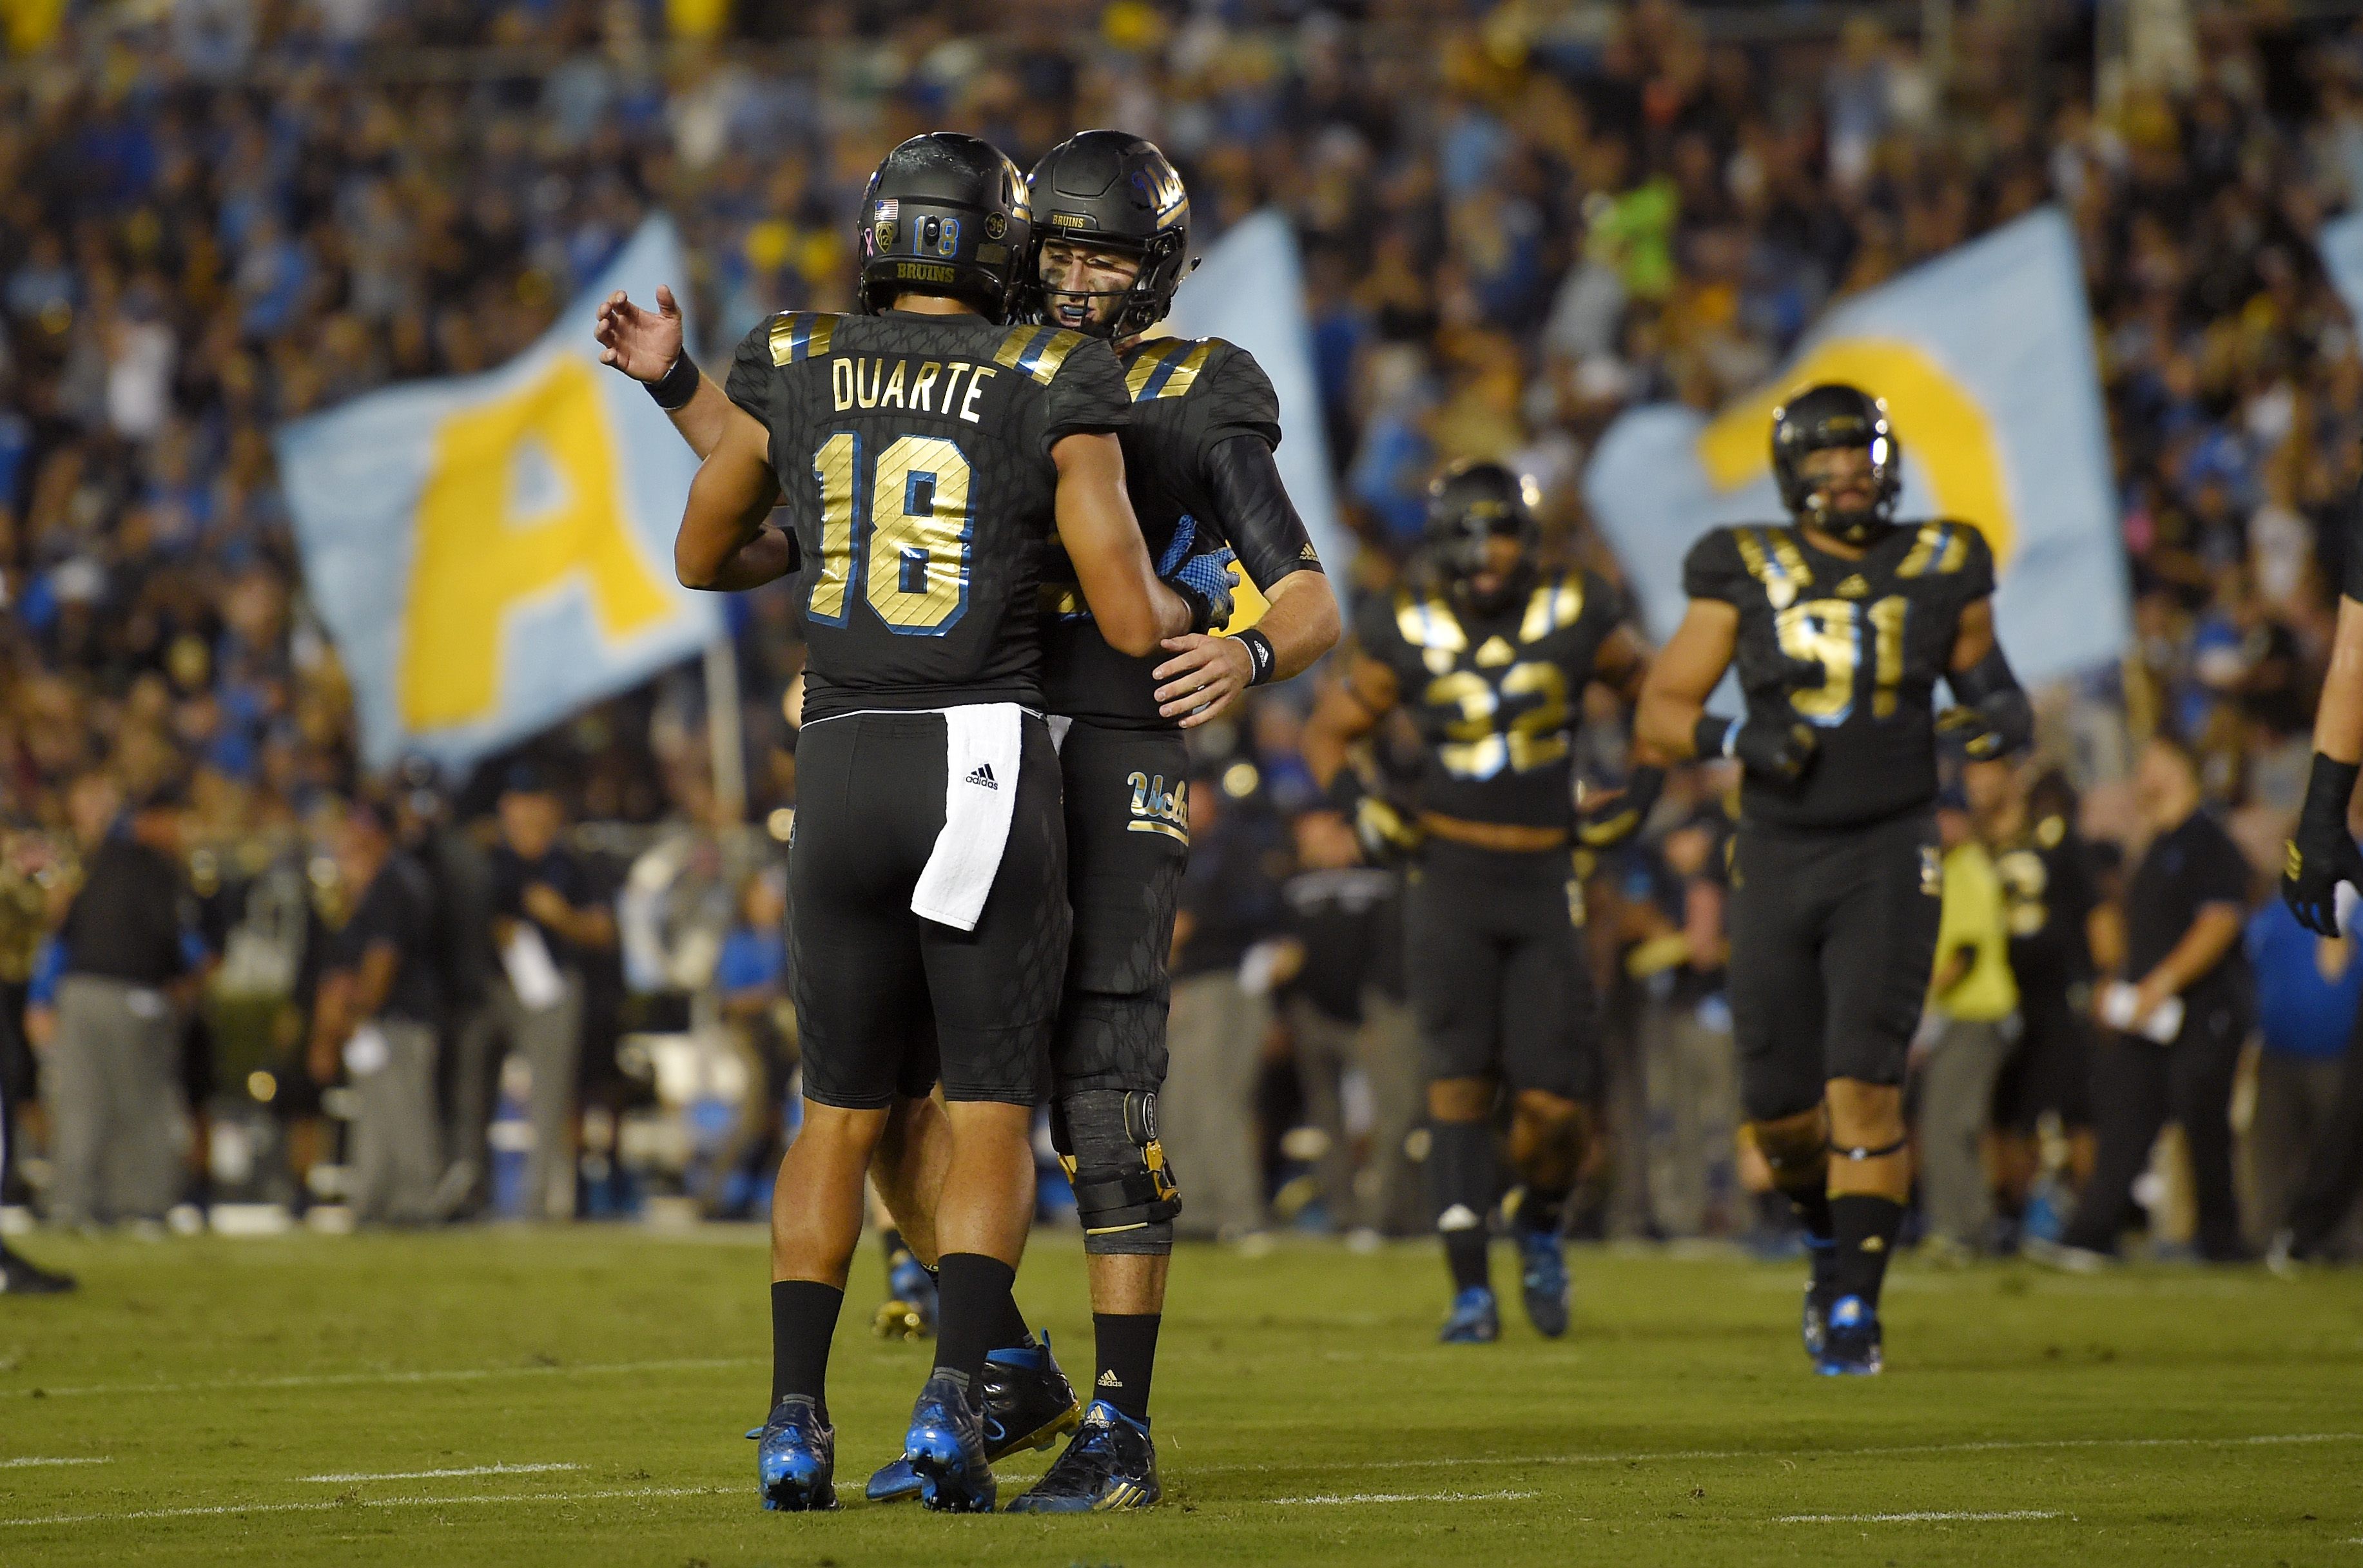 UCLA wide receiver Thomas Duarte, left, is congratulated by quarterback Josh Rosen after making a touchdown catch during the first half of an NCAA college football game against California, Thursday, Oct. 22, 2015, in Pasadena, Calif. (AP Photo/Mark J. Ter